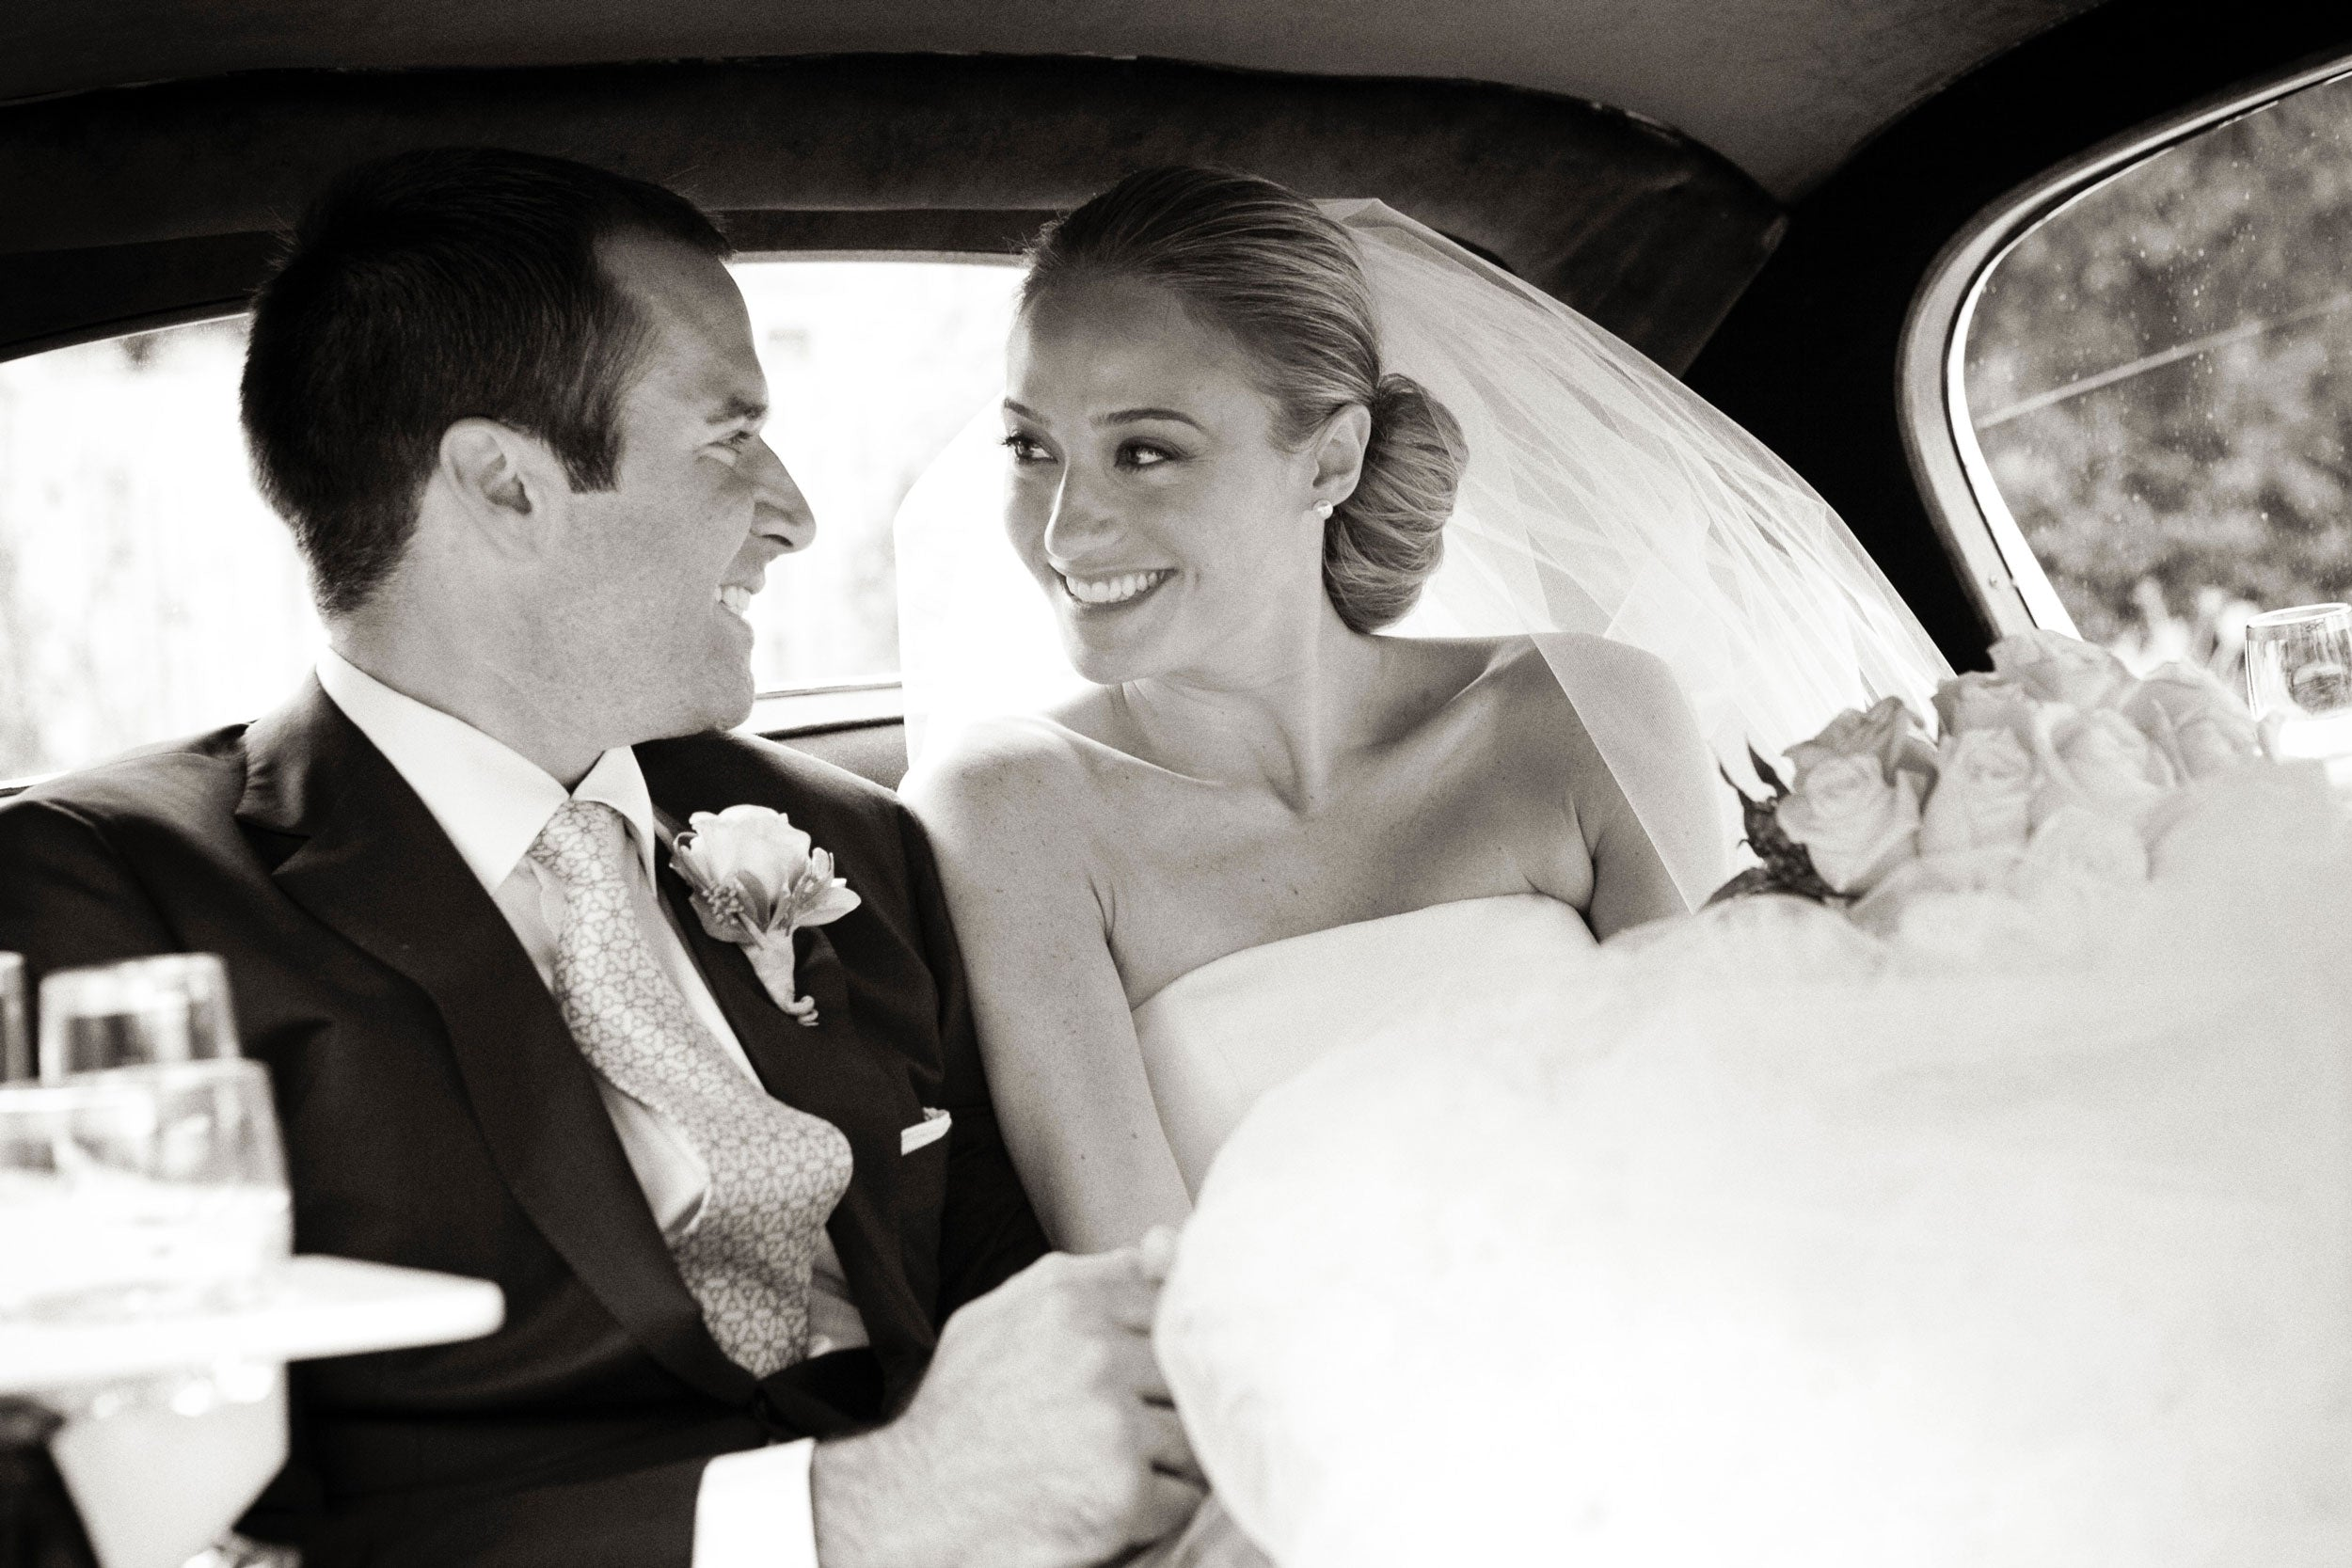 Pickett's Press Real Brides - Adrienne & Mike were wed at Holy Cross Church in Rumson, New Jersey.